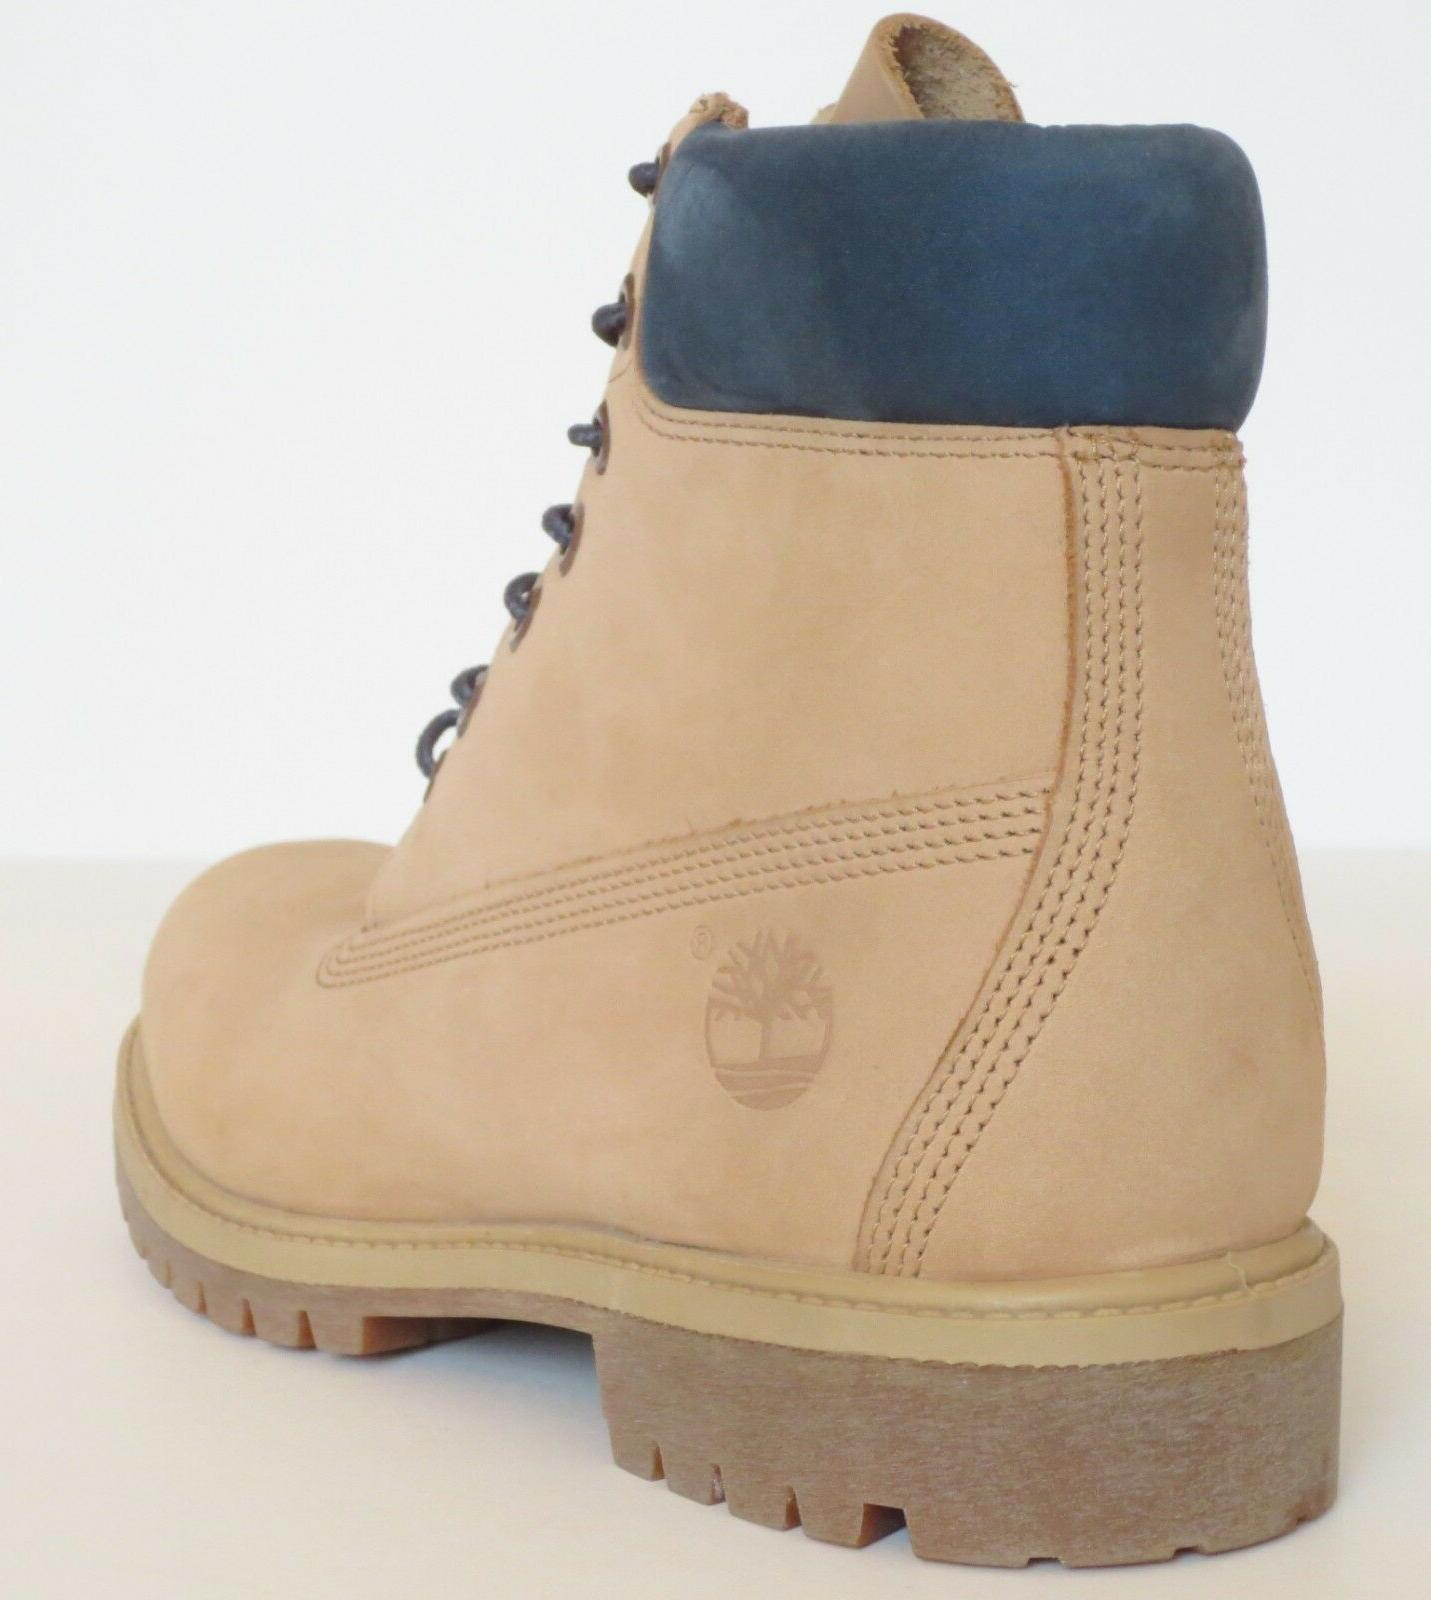 Timberland Premium Work Boots Style A1LTS / Sand